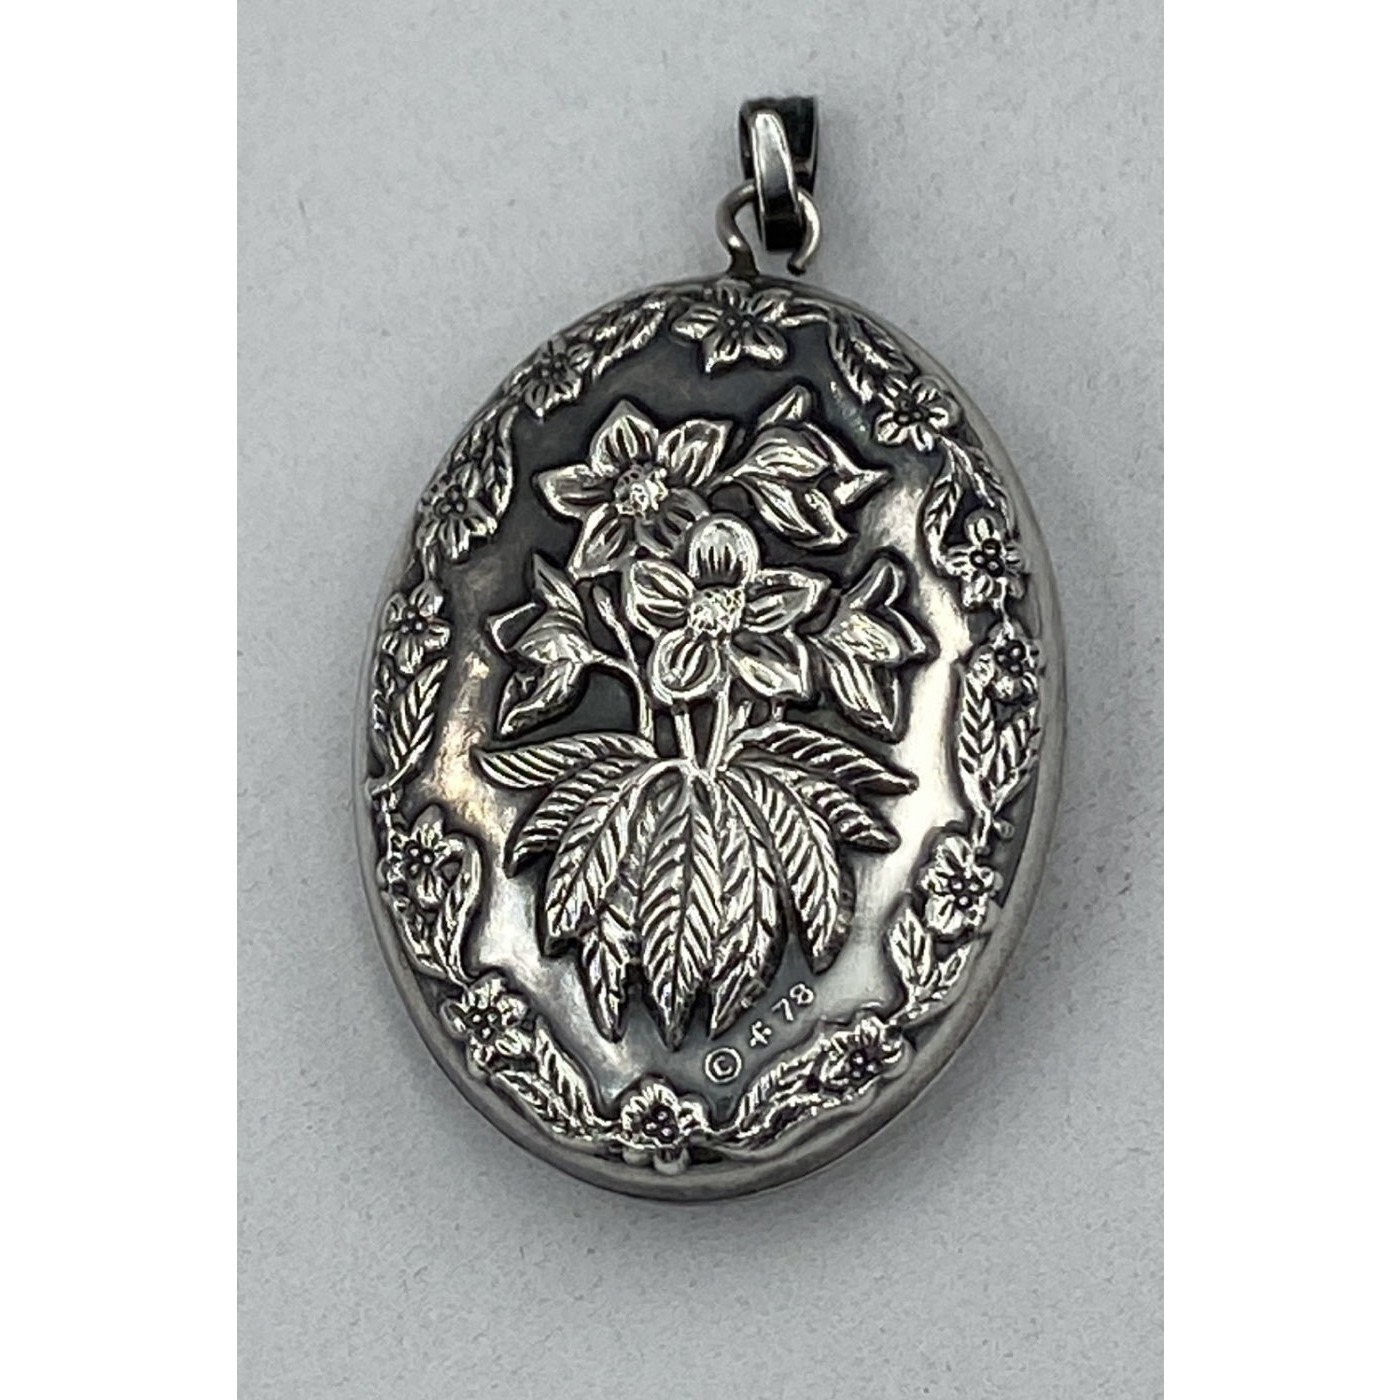 Lovely Floral Victorian English Silver Pendant